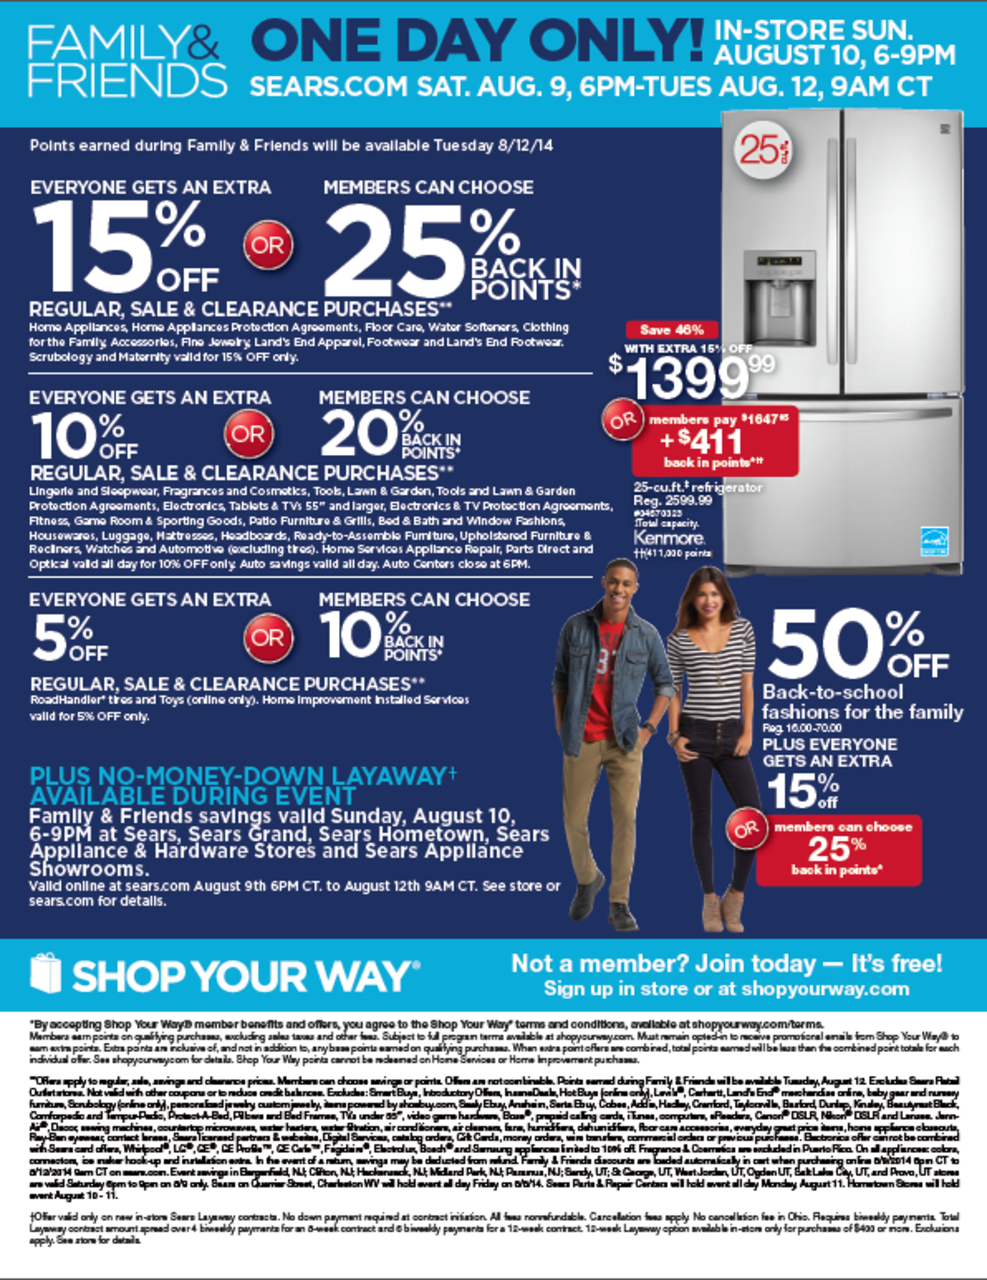 #ad #Ad Shop Sears For Your Back To School Wardrobe http://makingourlifematter.com/back-to-school-wardrobe/?utm_campaign=coschedule&utm_source=pinterest&utm_medium=Making%20Our%20Life%20Matter%20(Family!)&utm_content=%23Ad%20Shop%20Sears%20For%20Your%20Back%20To%20School%20Wardrobe Hurry as this Family&Friends sale ends soon! #BackToYou